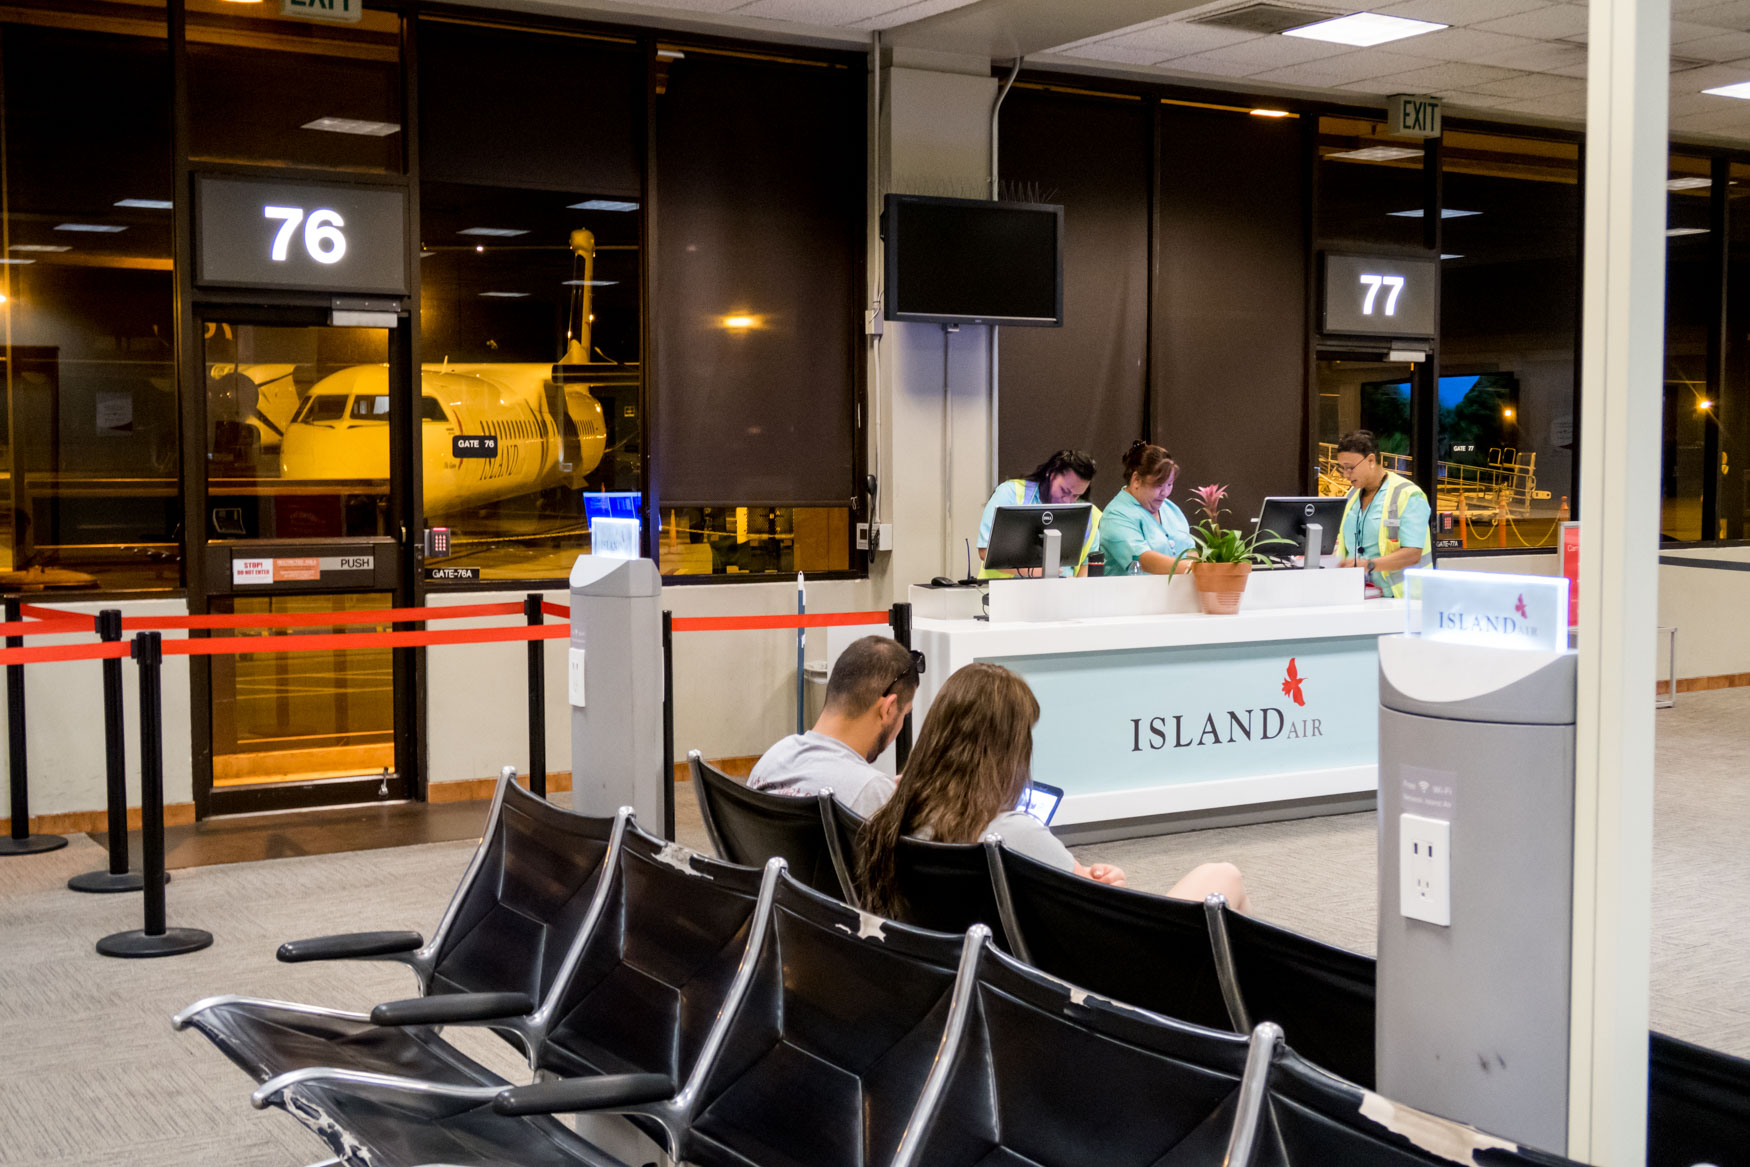 Island Air Boarding Gate